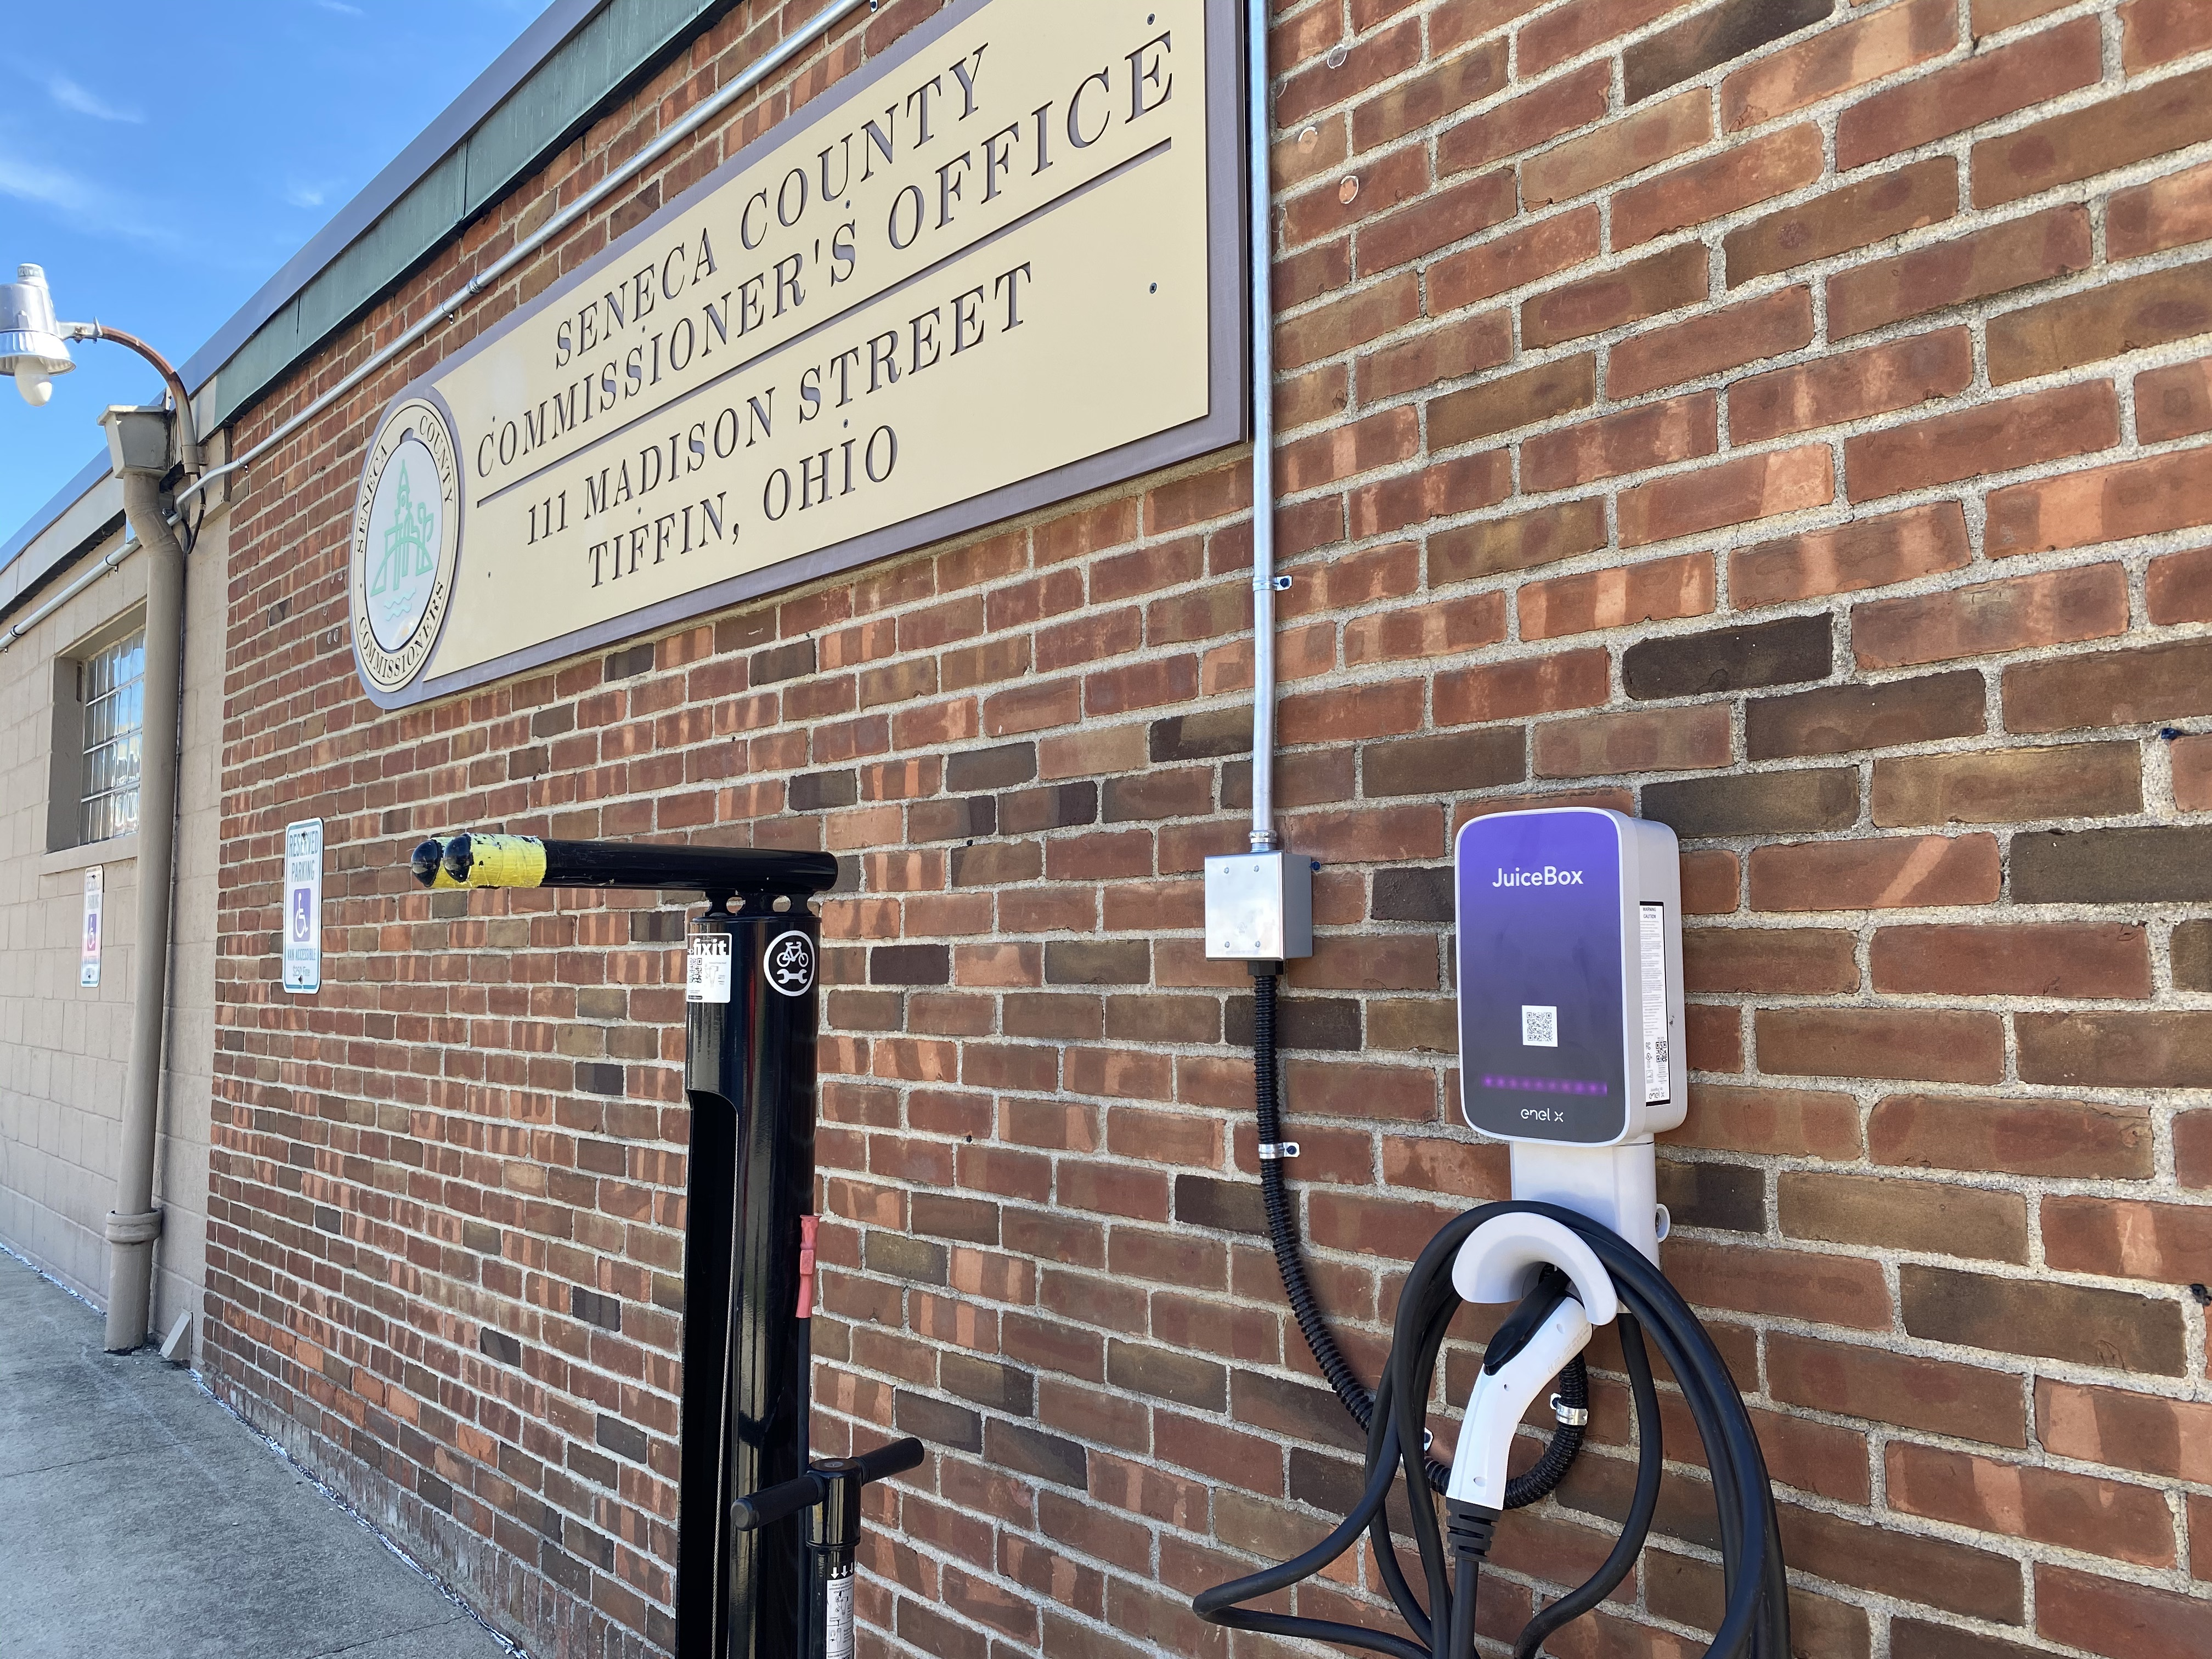 Buckeye It Expands Services Into Electric Vehicle Chargers Tiffin Seneca Economic Partnership